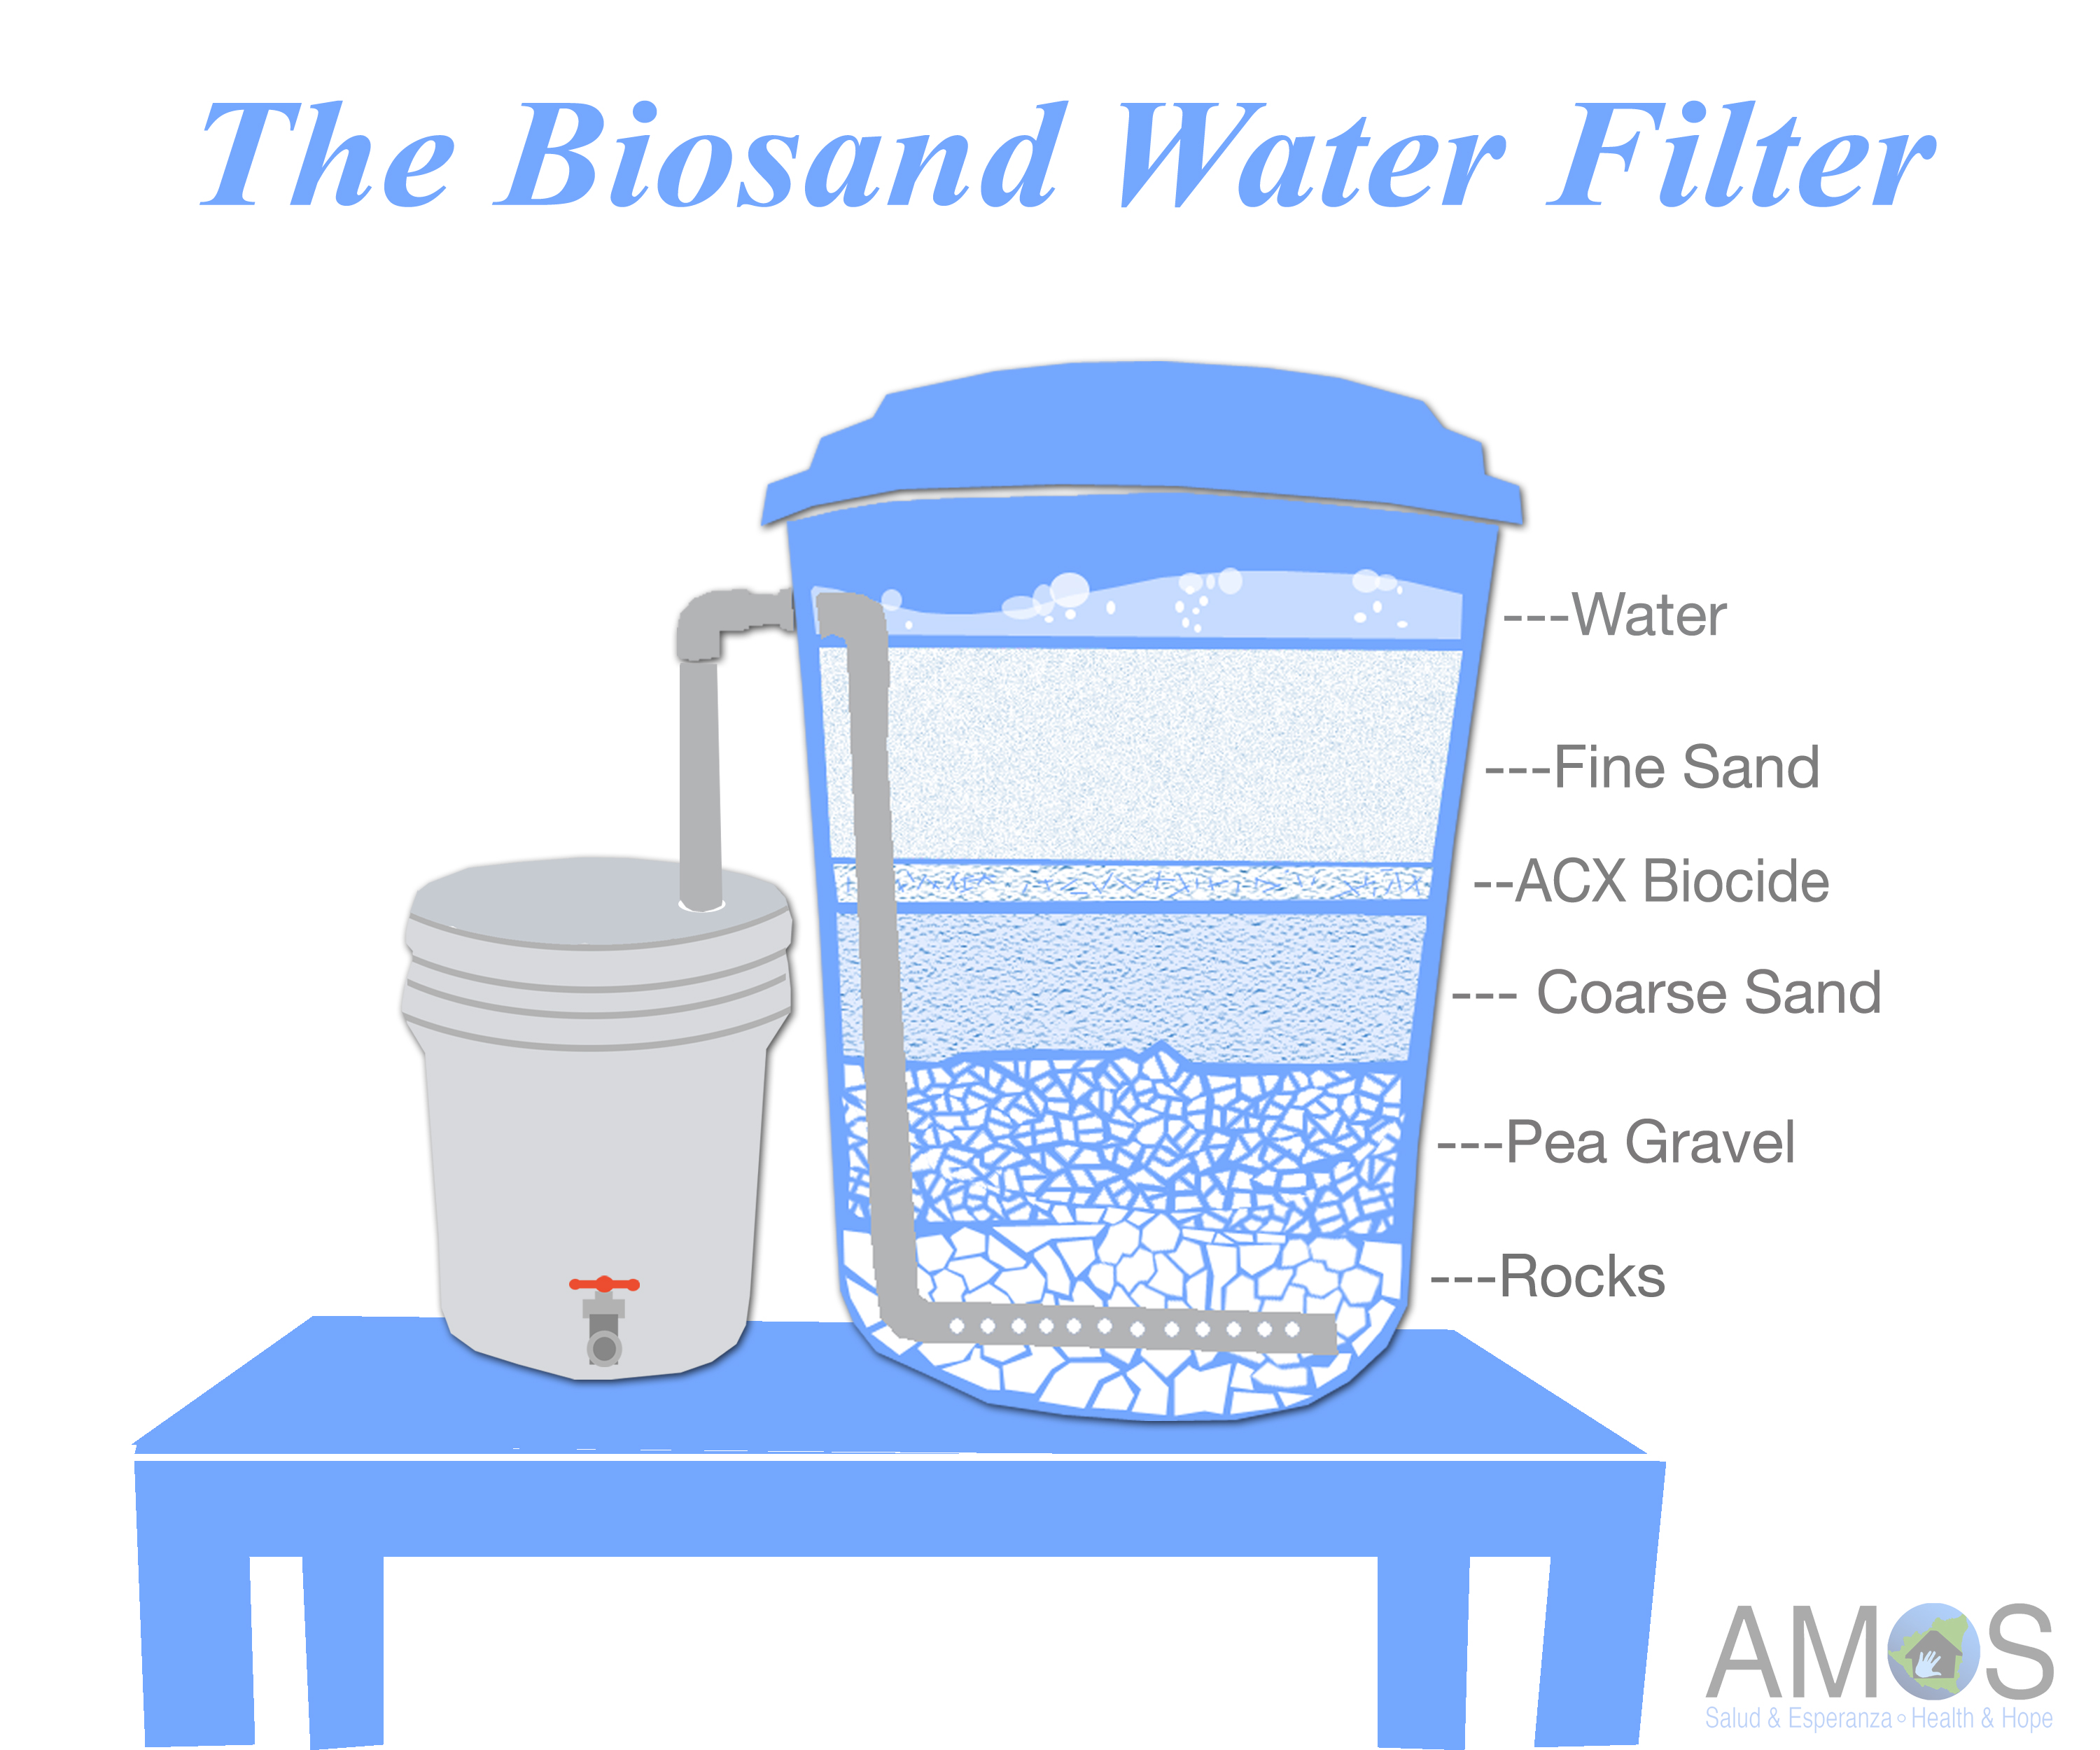 Build A Water Filter System Mycoffeepot Org